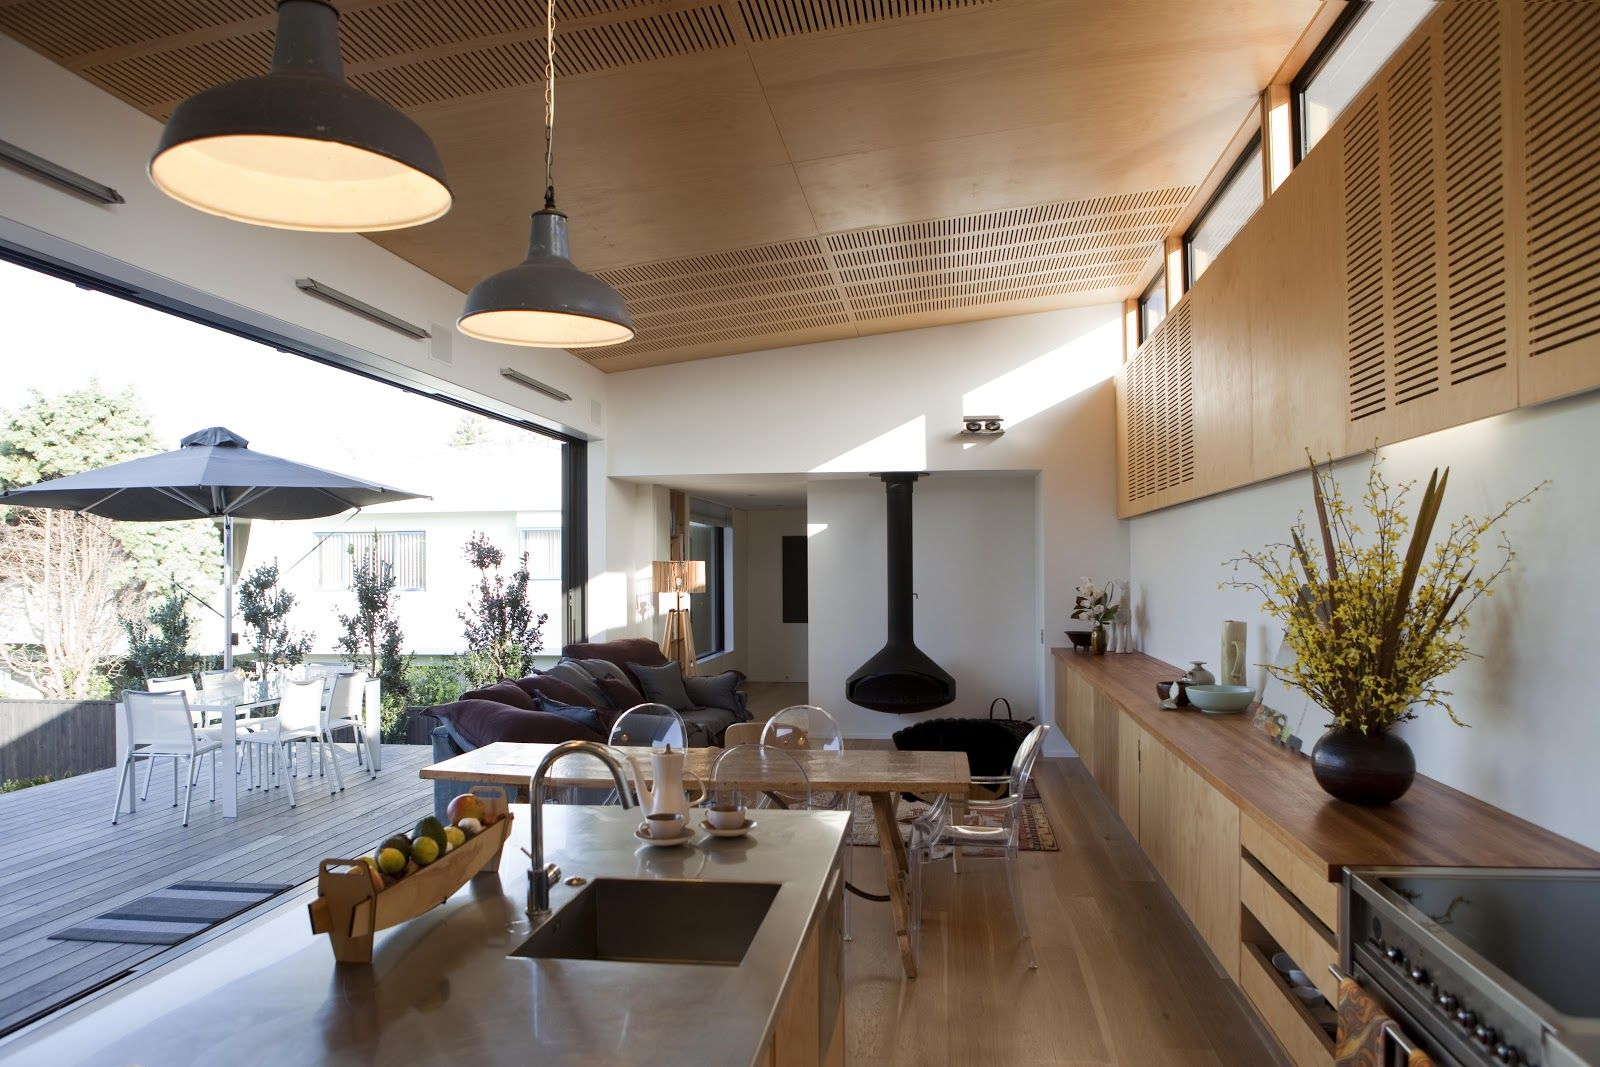 Architect evan mayo nz kitchen kitchen dining